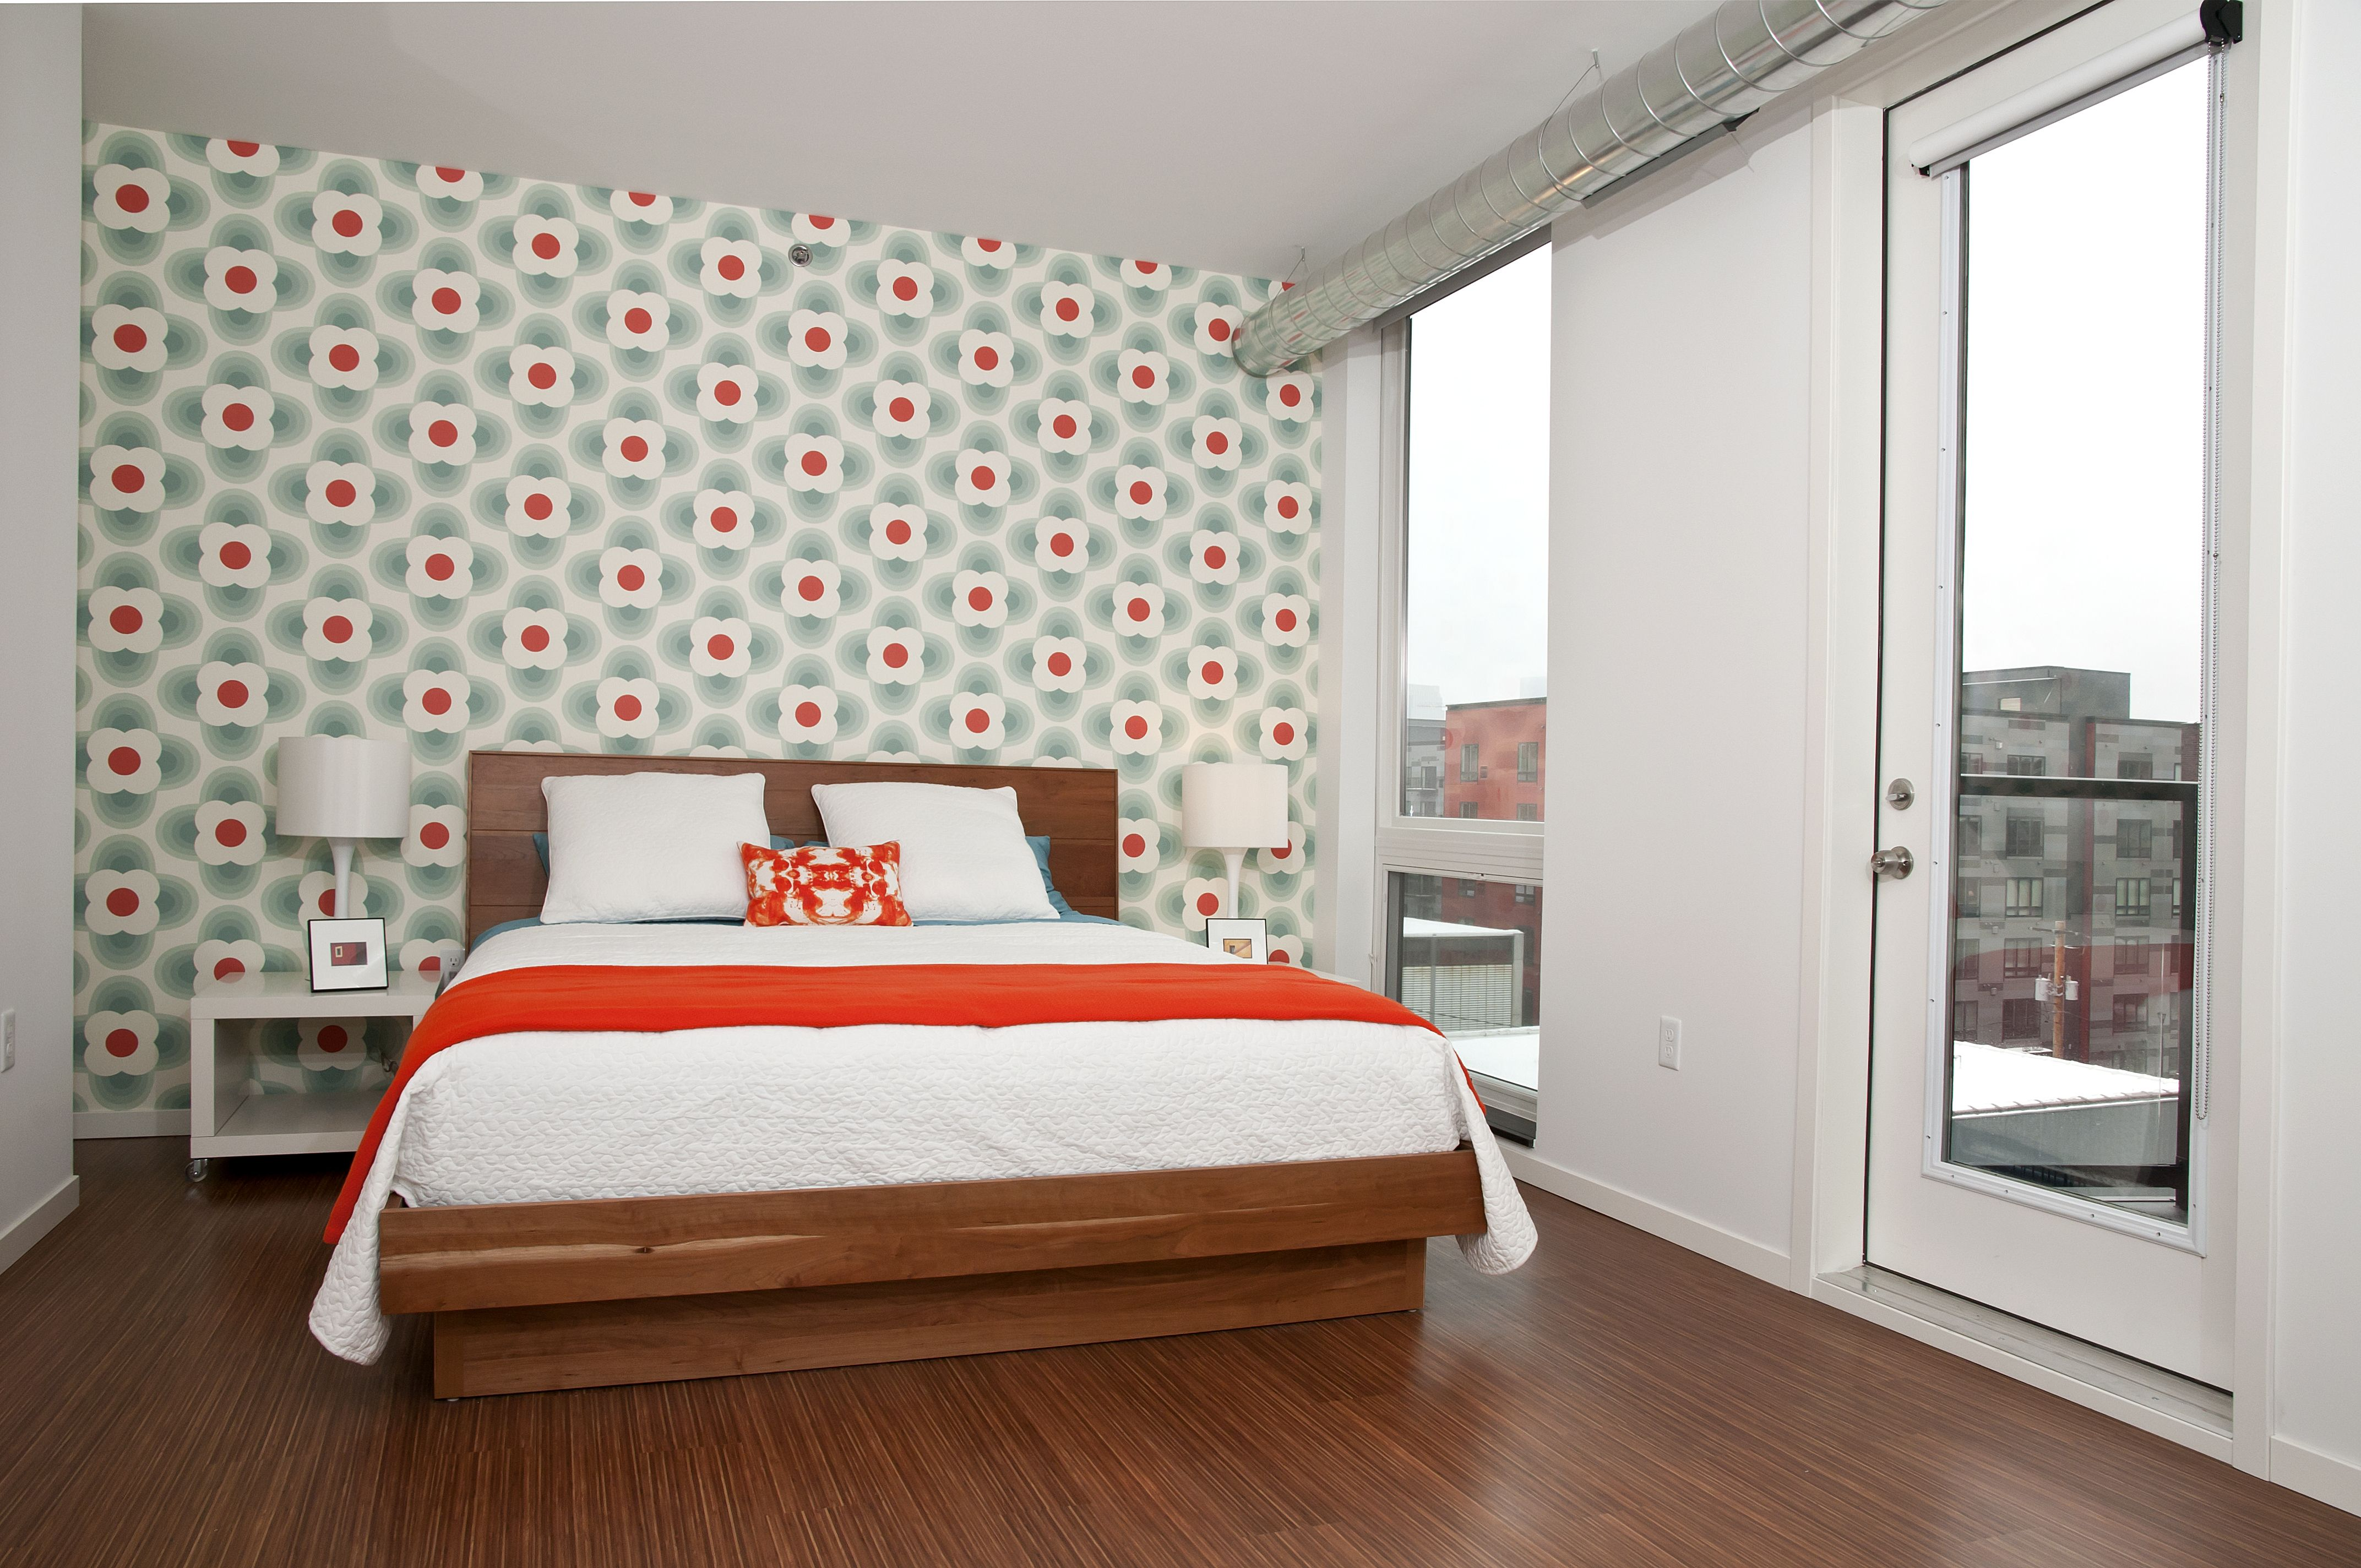 Studio 1 2 Bedroom Apartments In Minneapolis Mn Floor Plans Home Decor Renting A House Apartment Living